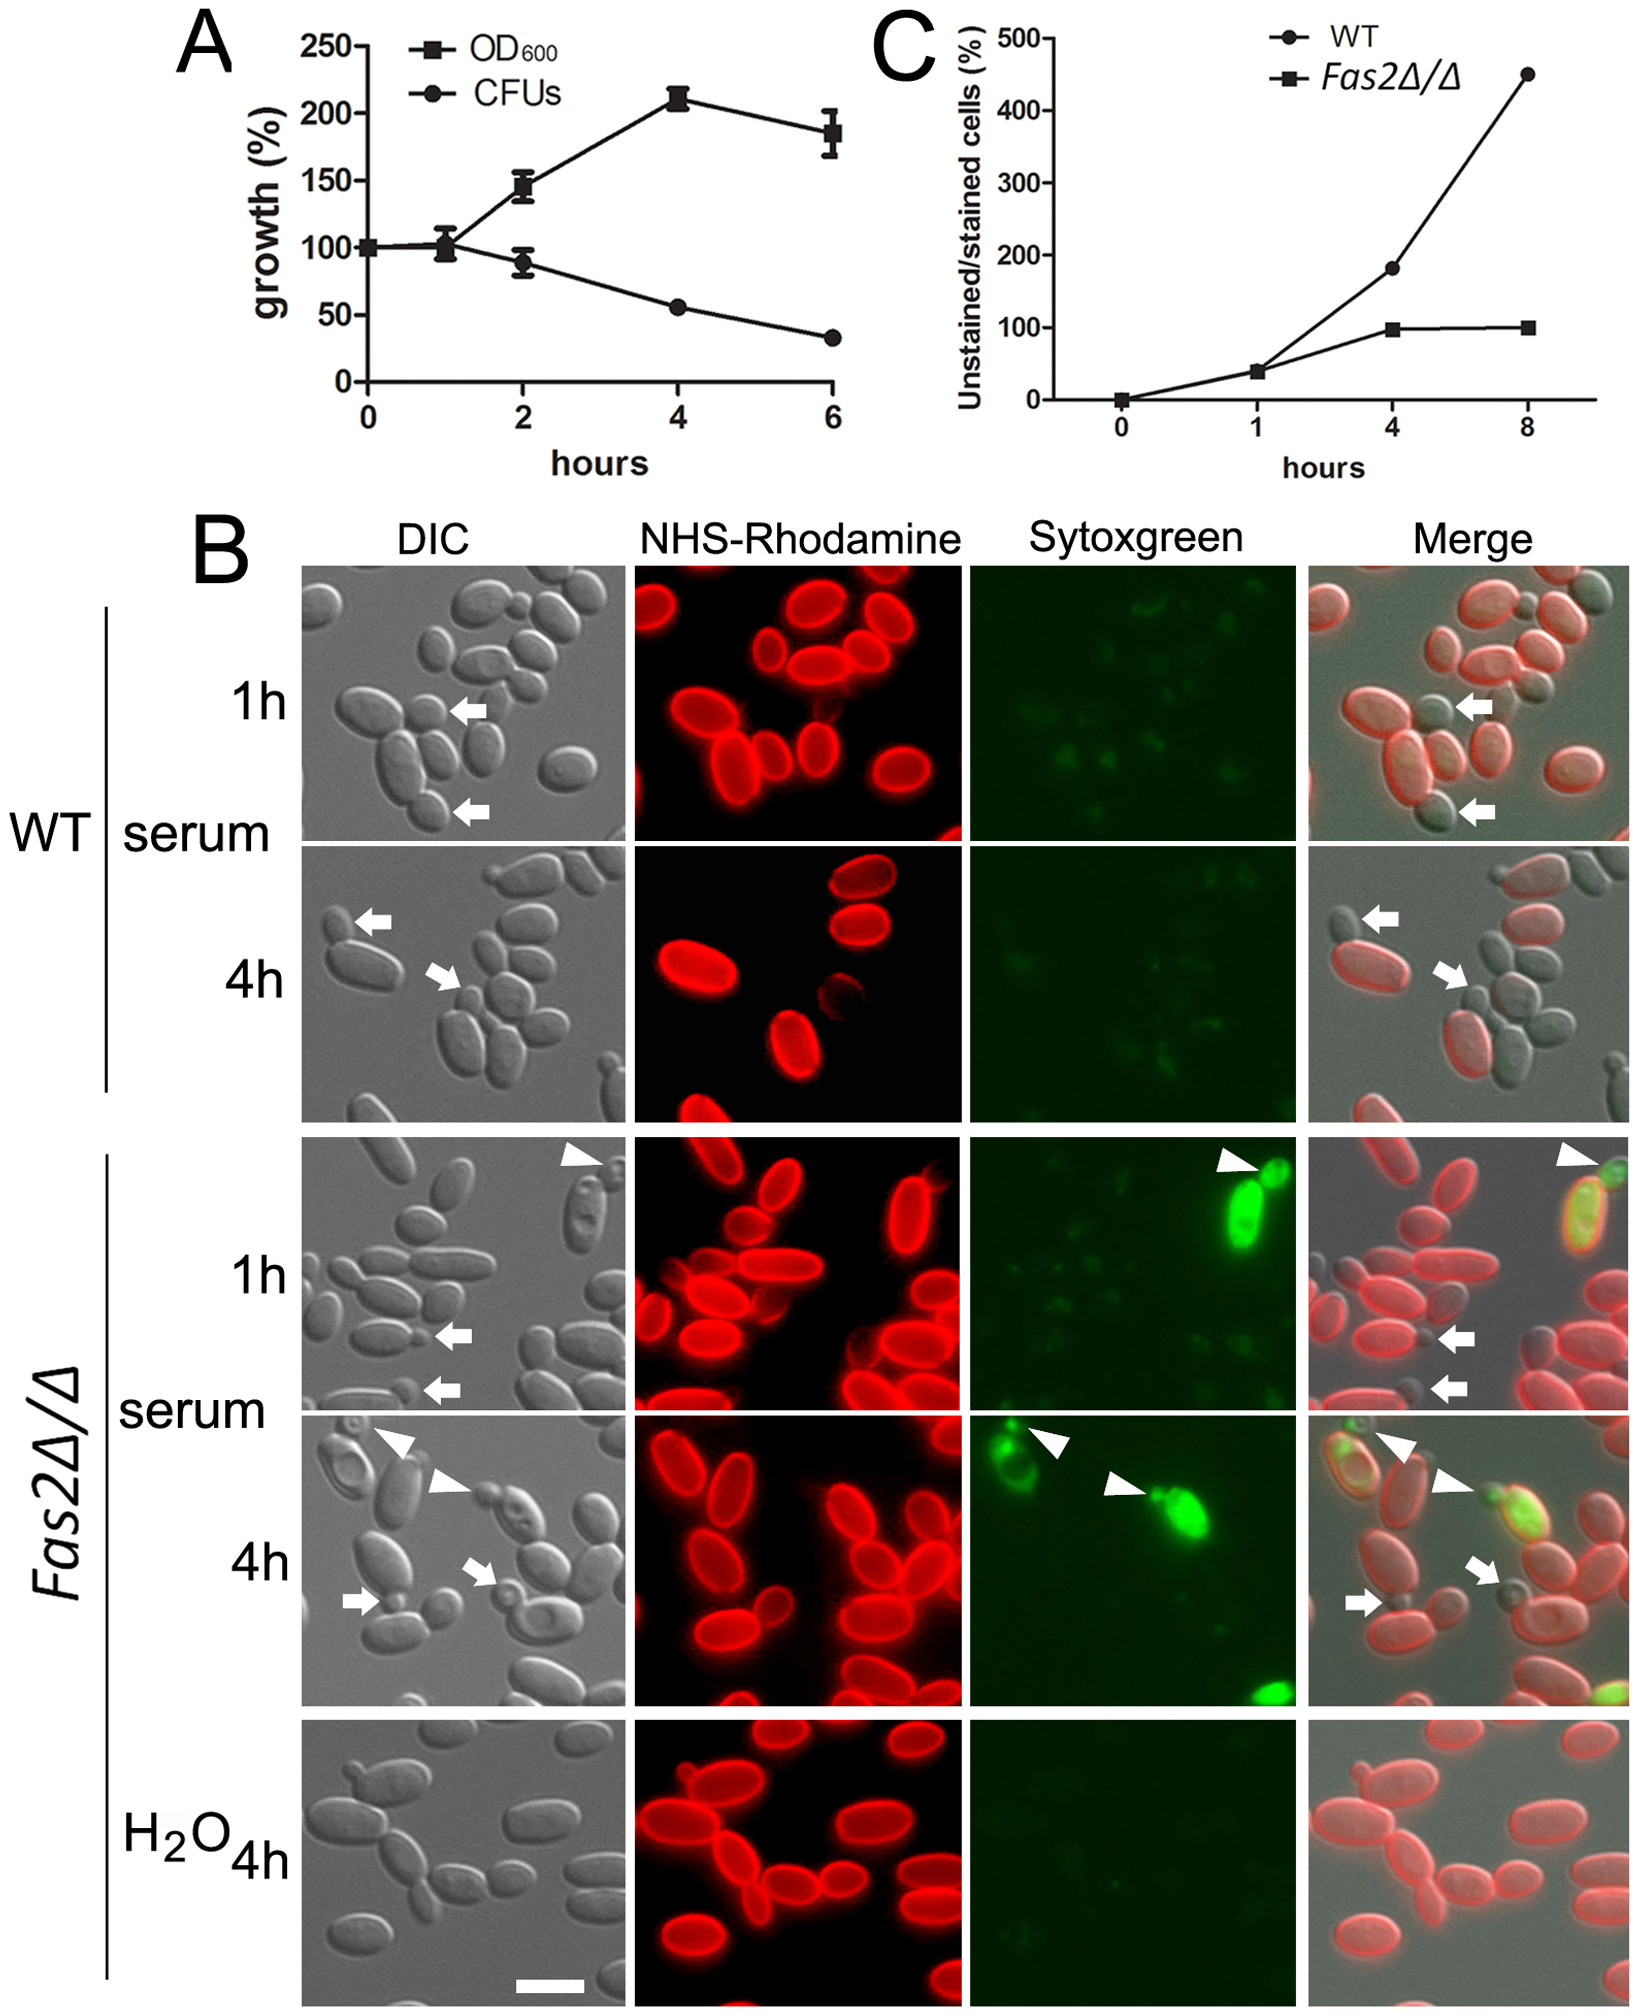 Serum incubation results in dysfunction in bud formation in <i>Fas2Δ/Δ</i> yeast cells.